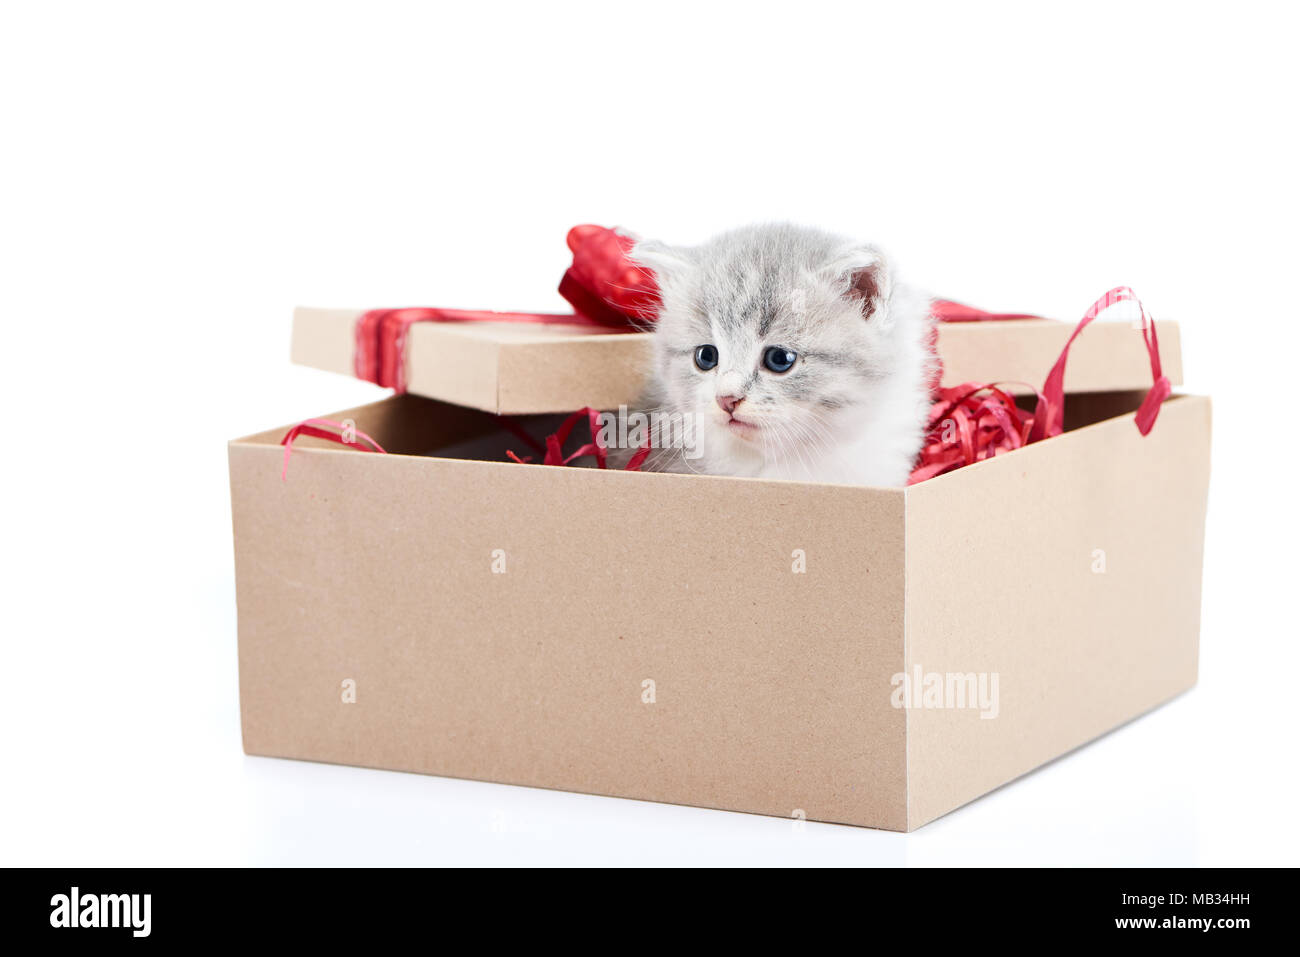 Little grey fluffy cute kitten sitting inside cardboard box with red birthday box on top being present for special occasion. Small adorable charming playful cat valentine day curious happiness Stock Photo